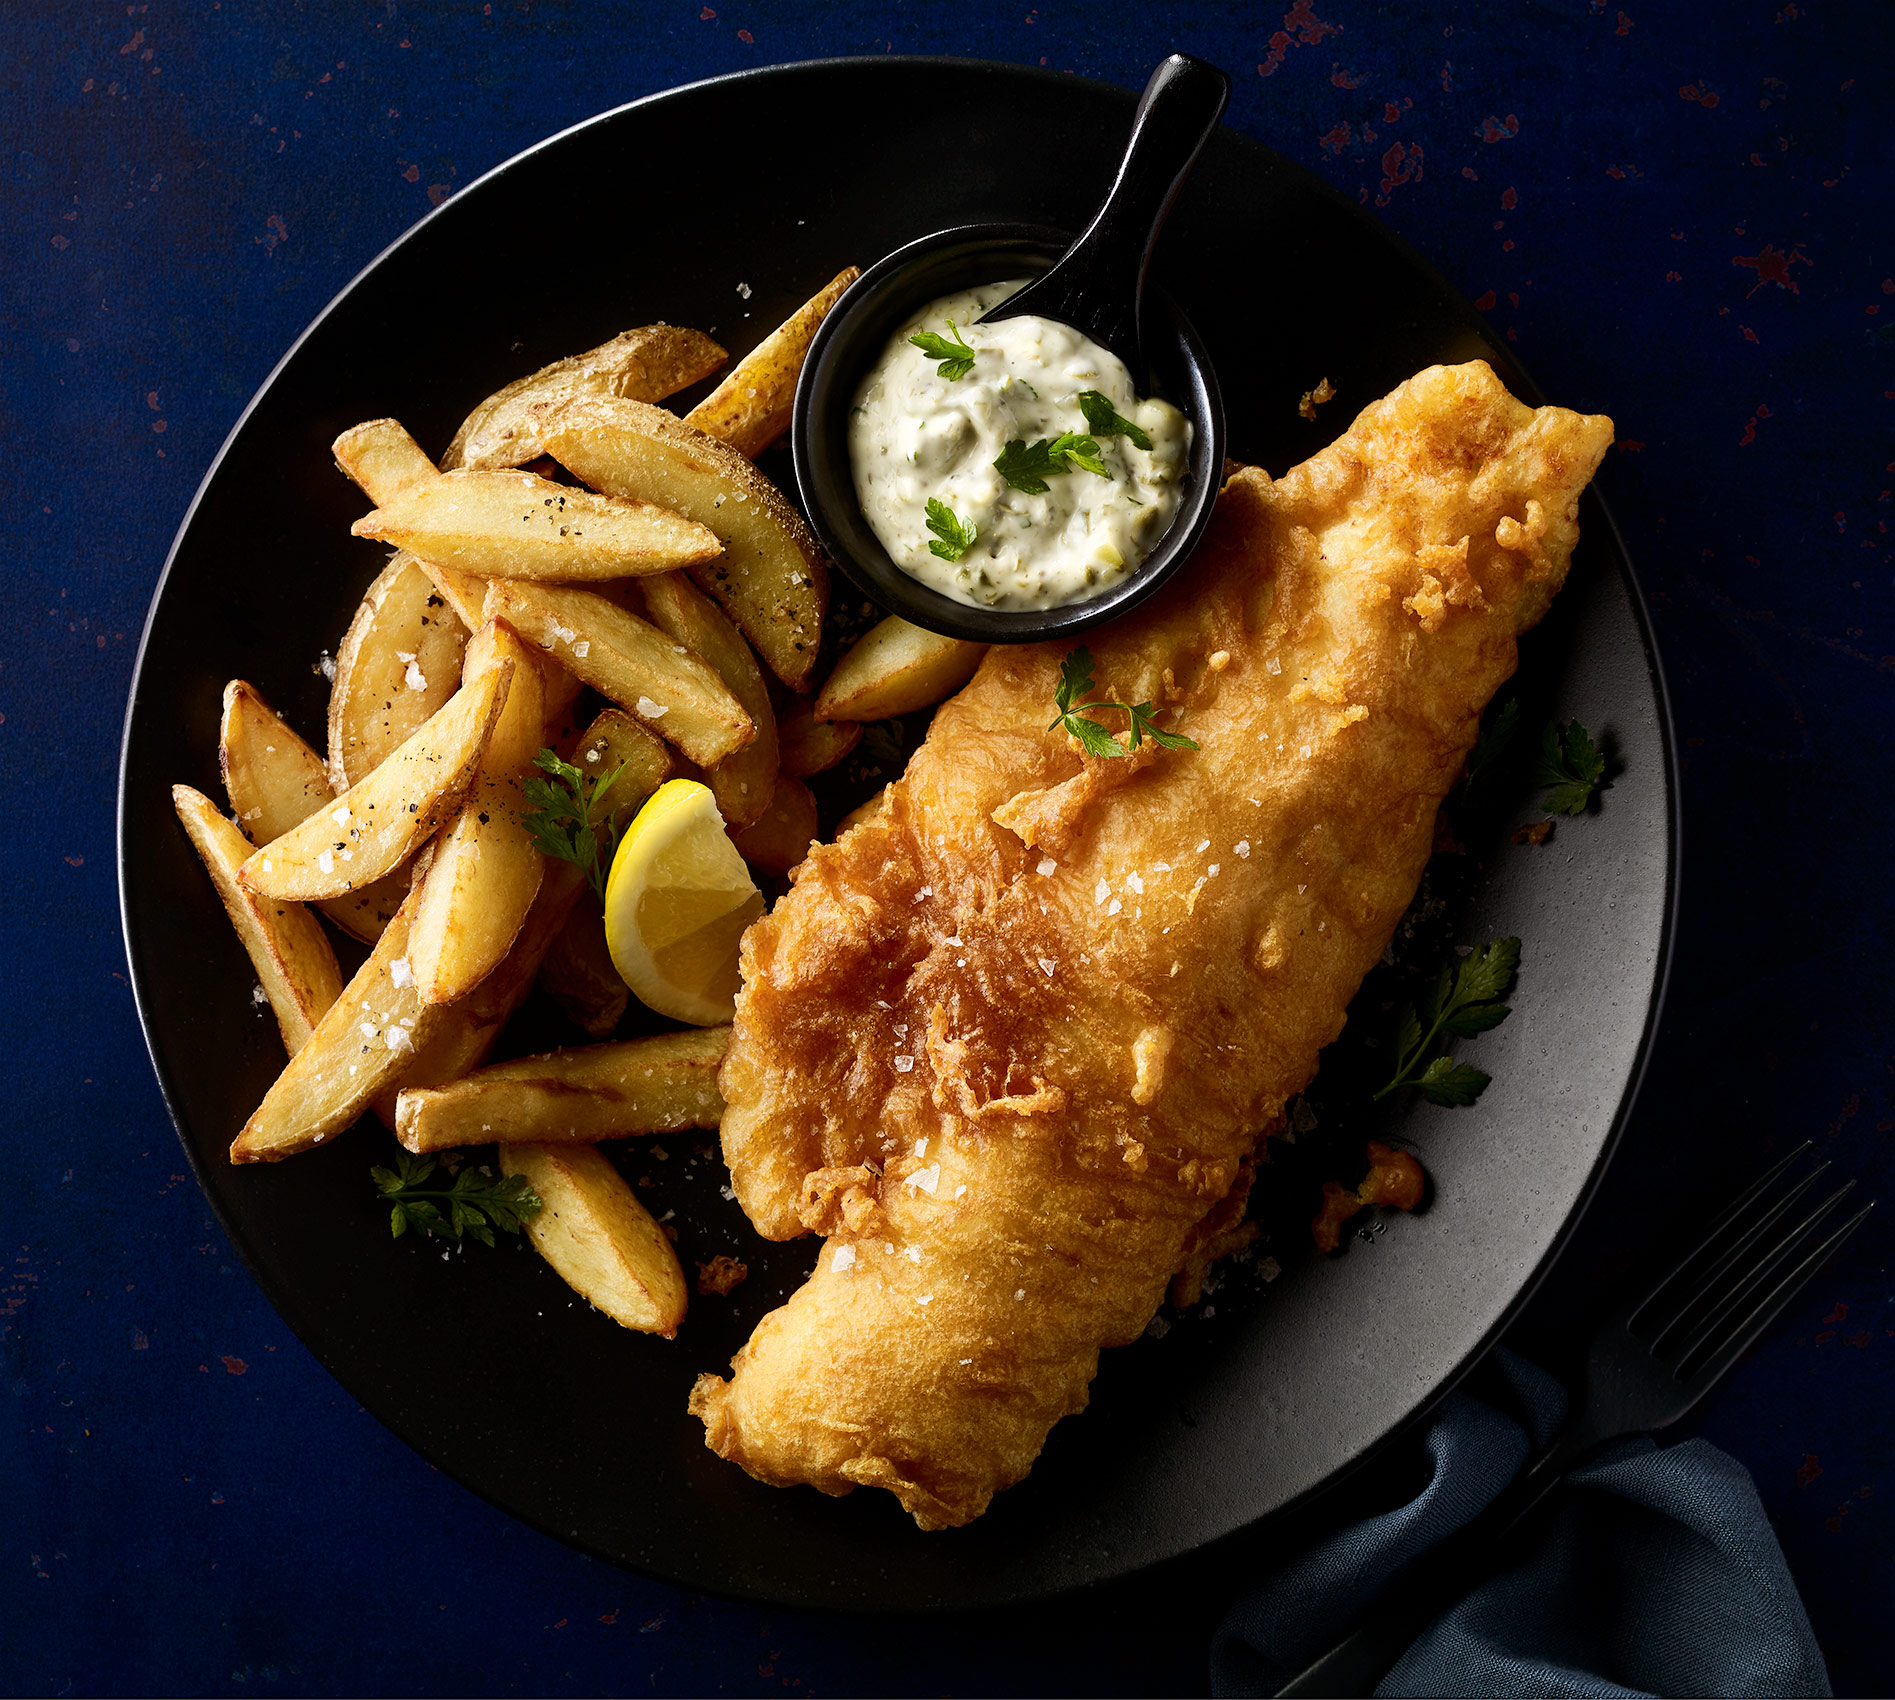 home_fried_haddock_in_batter_with_chips-7